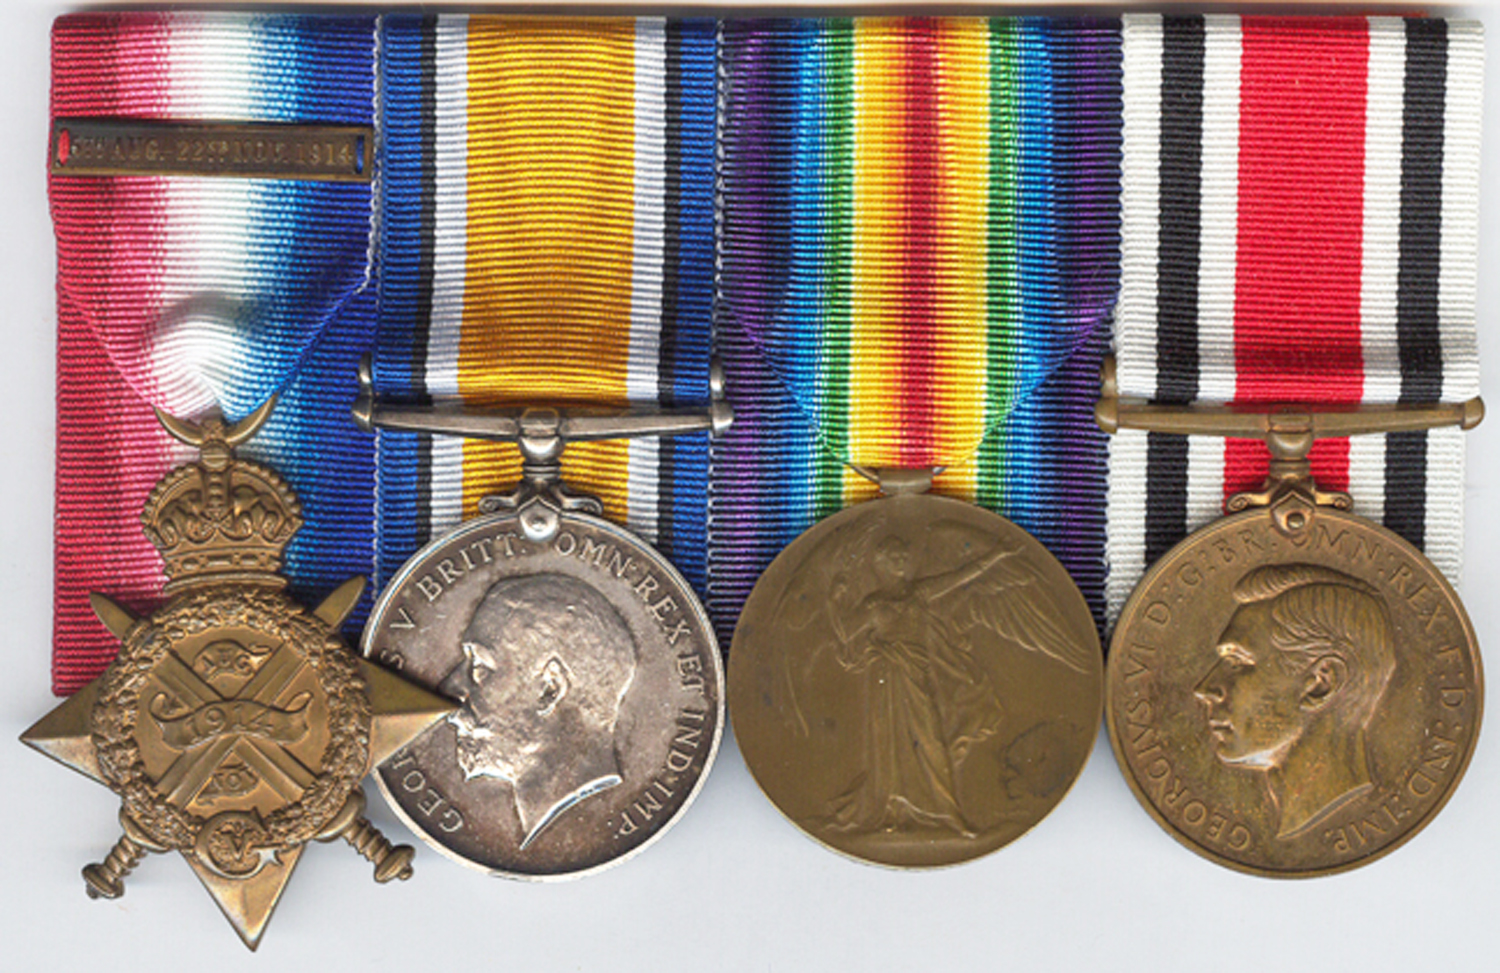 The medal group to Major William Graham Curling, RFA with a Type I Victory Medal issued on 20 November 1920.